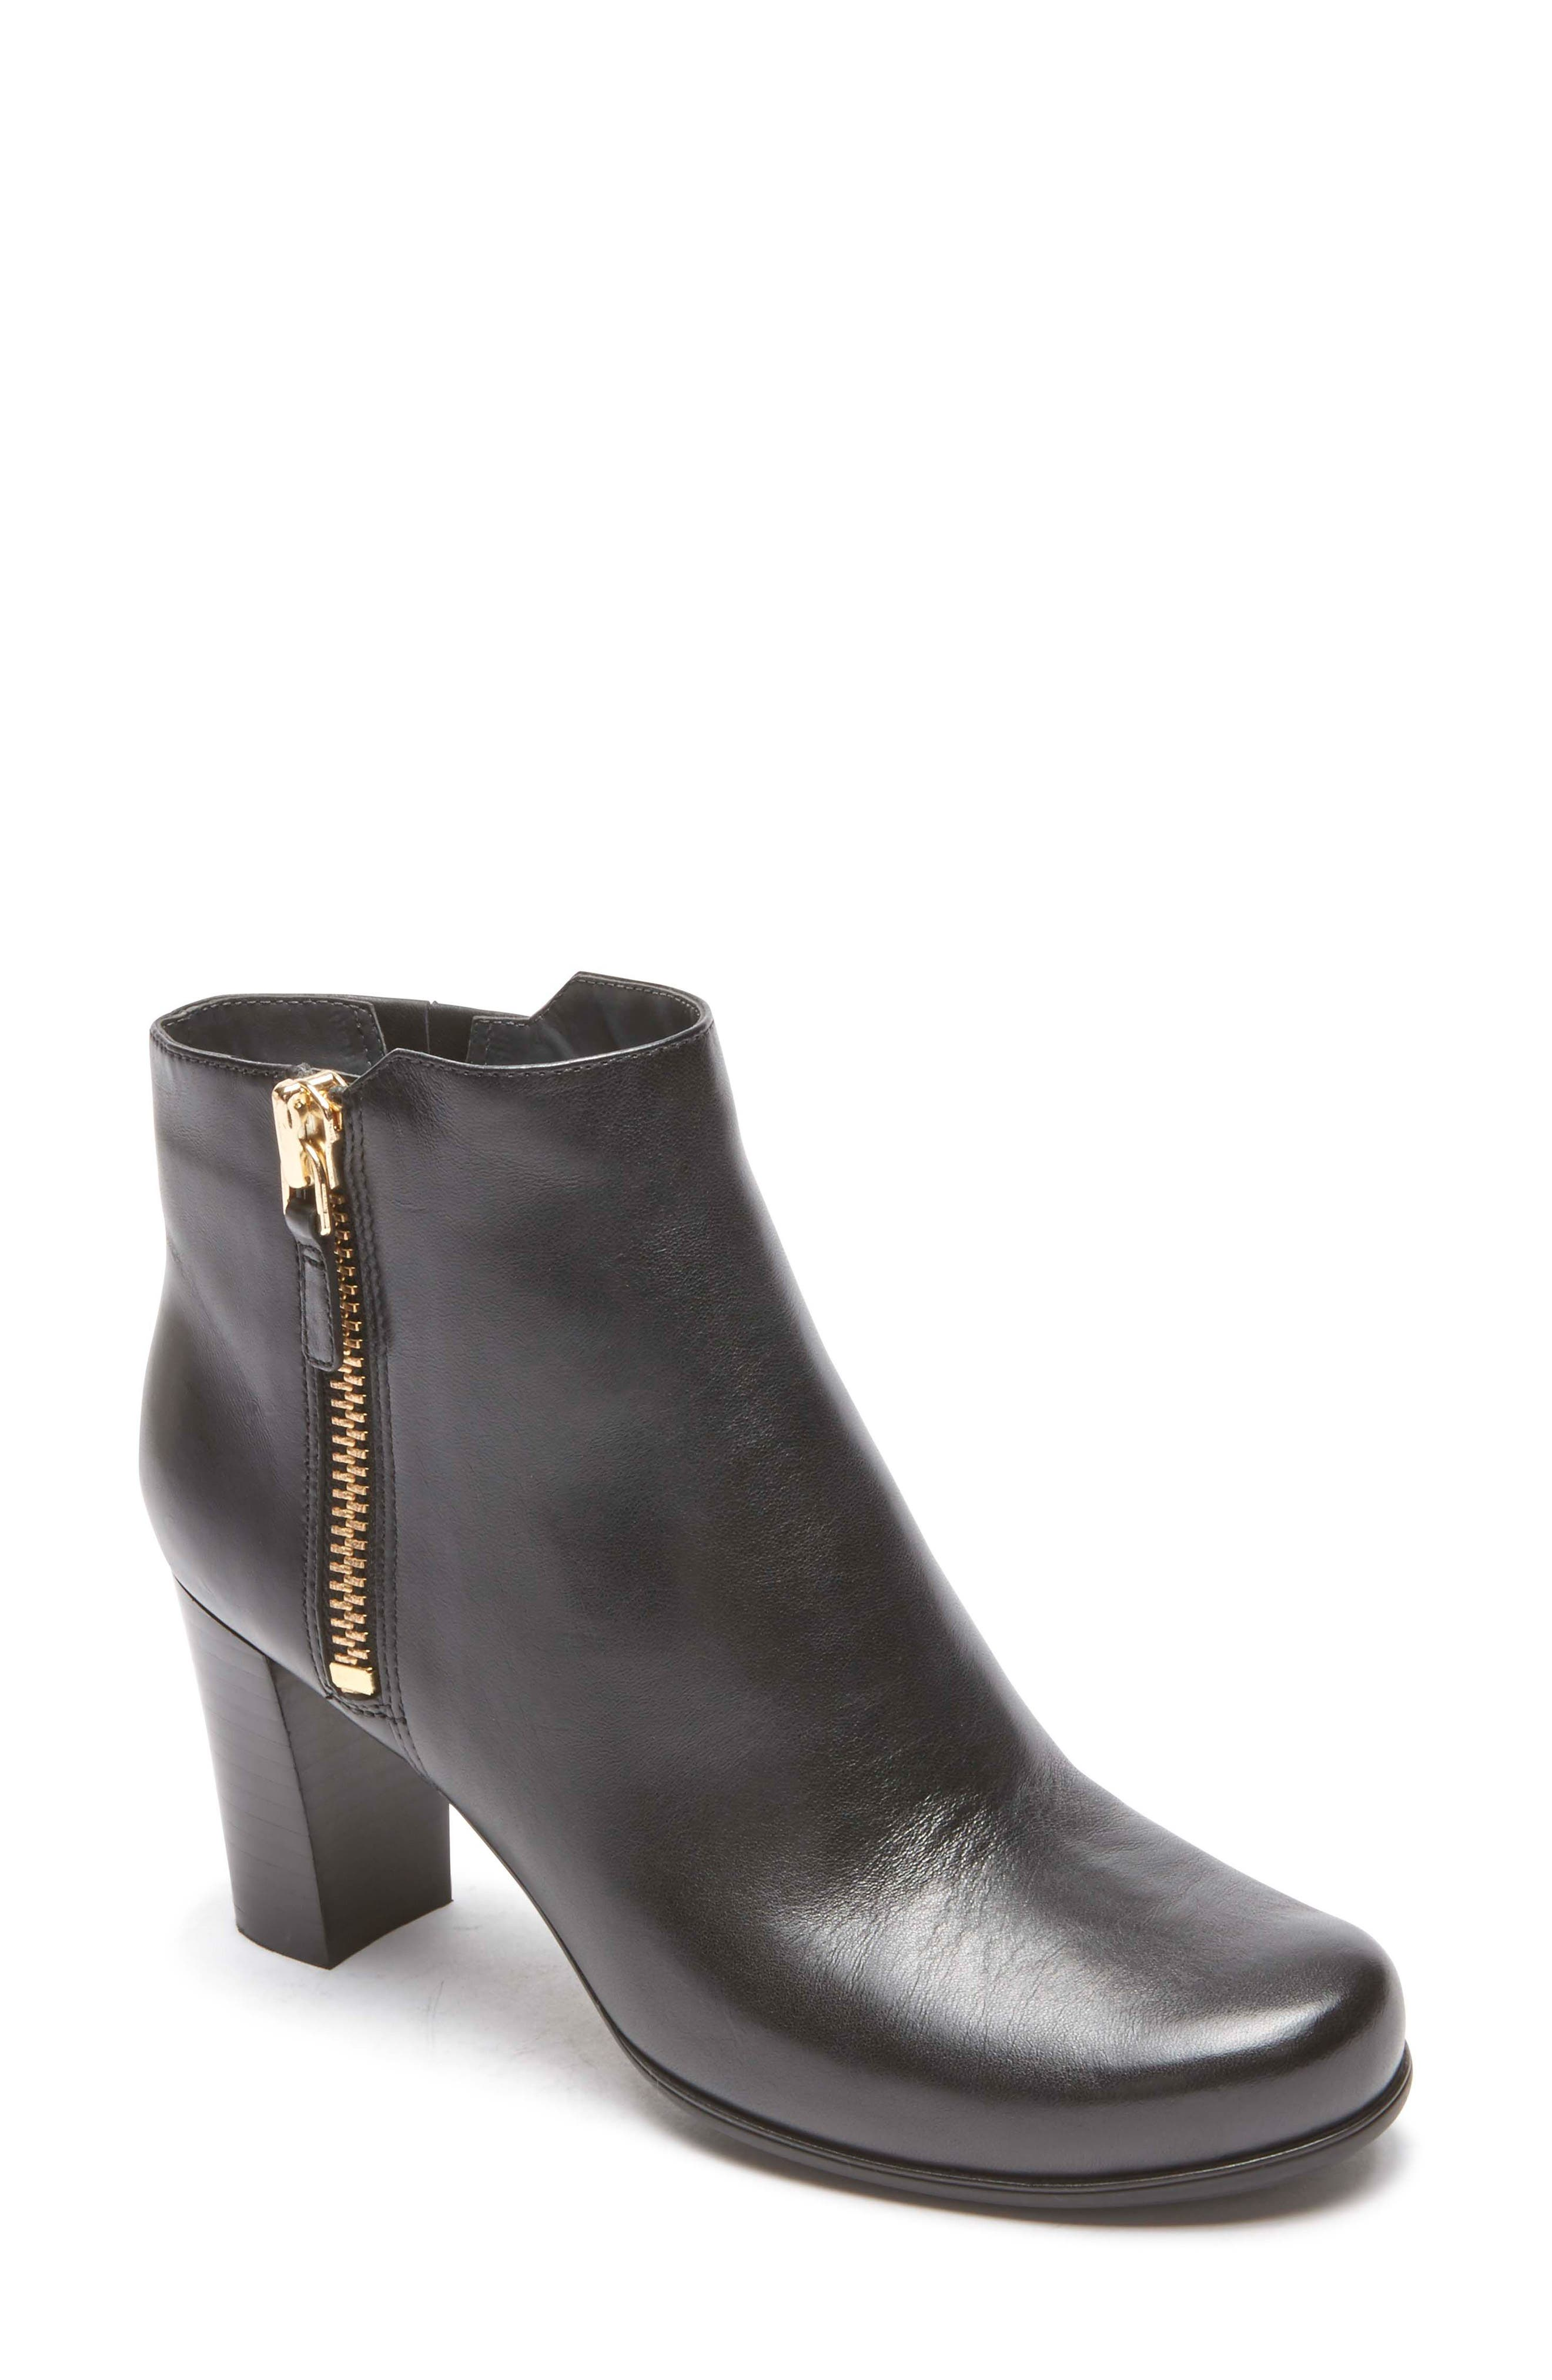 Trixie Luxe Bootie,                         Main,                         color, 001